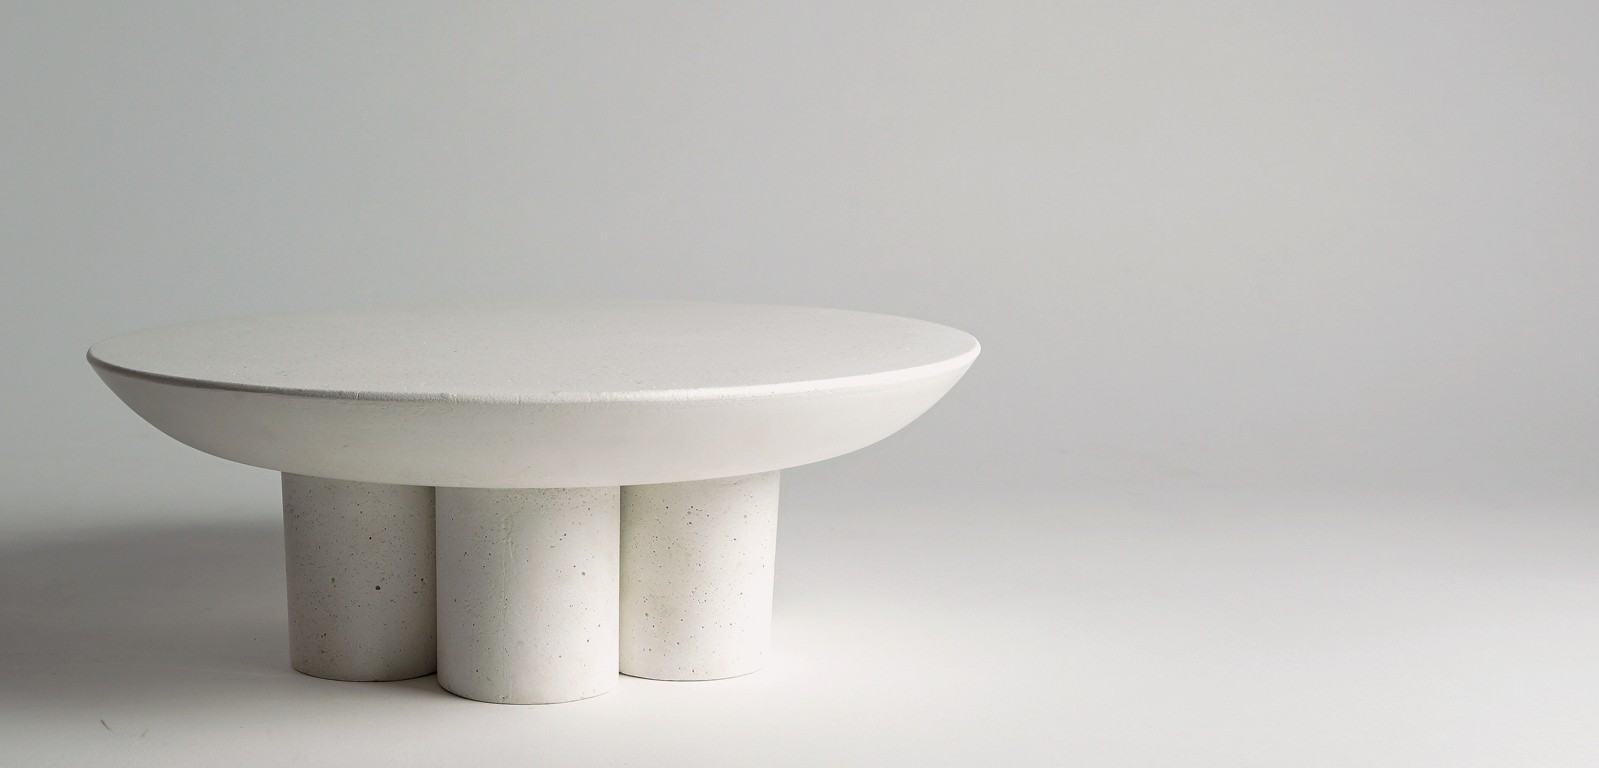 PILLAR-STAND-sculptural-platter-centerpiece-white-concrete-luxury-alentes